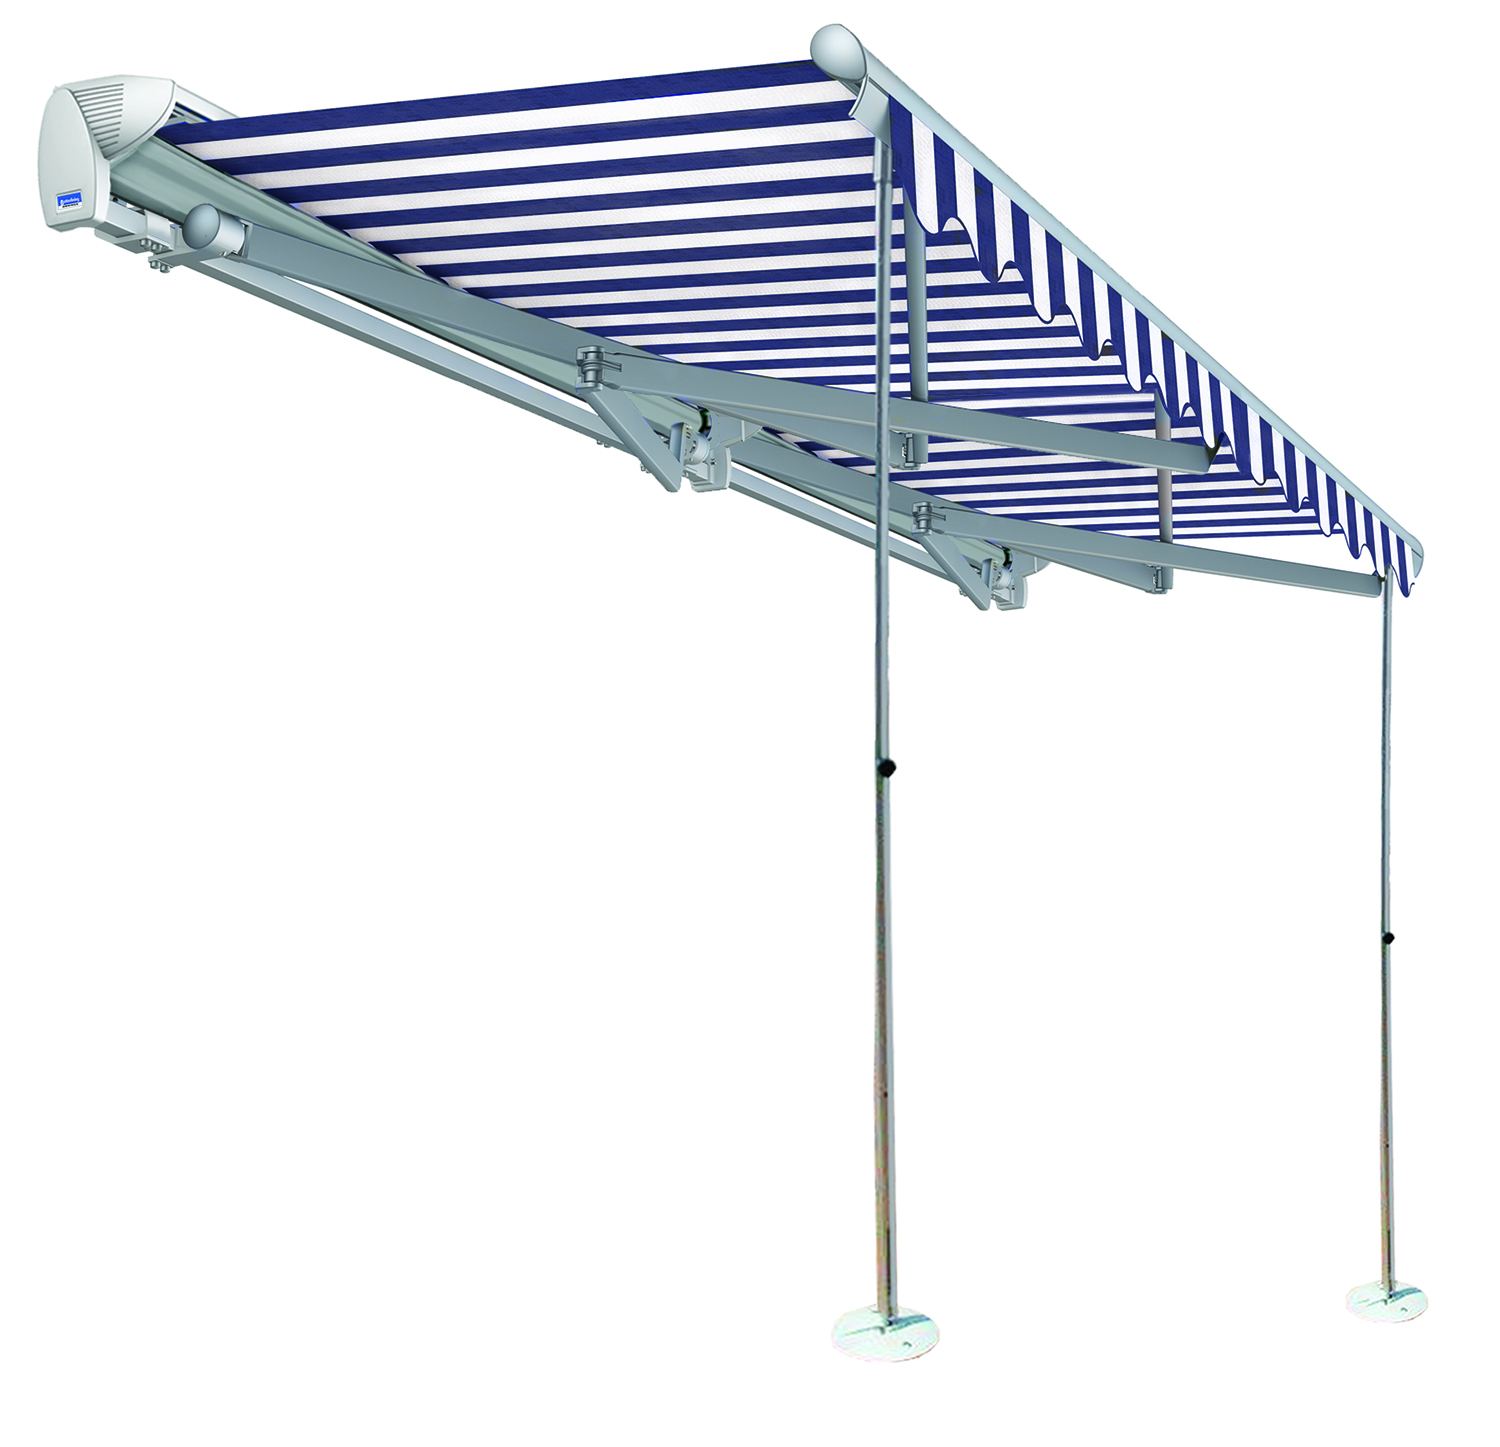 Retractable Awning for Large Openings